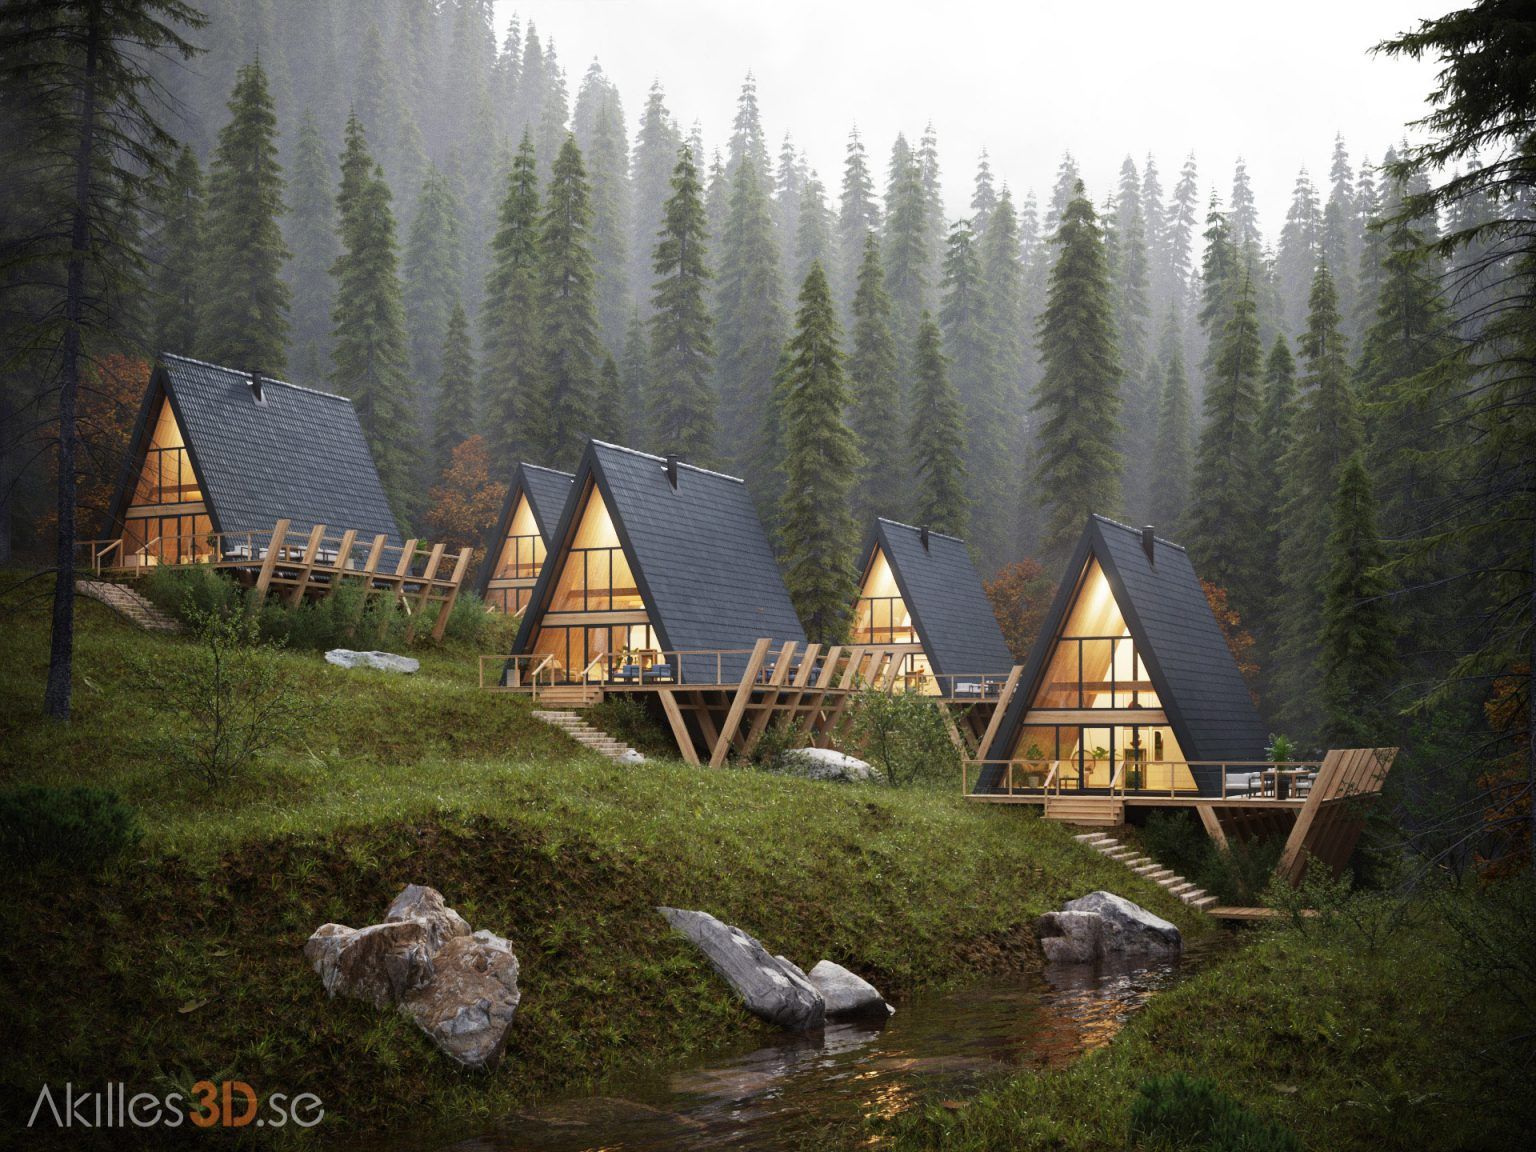 Cabins in the forest 1 - fog pines realistic 3D visualization exterior architecture CGI high-end top quality